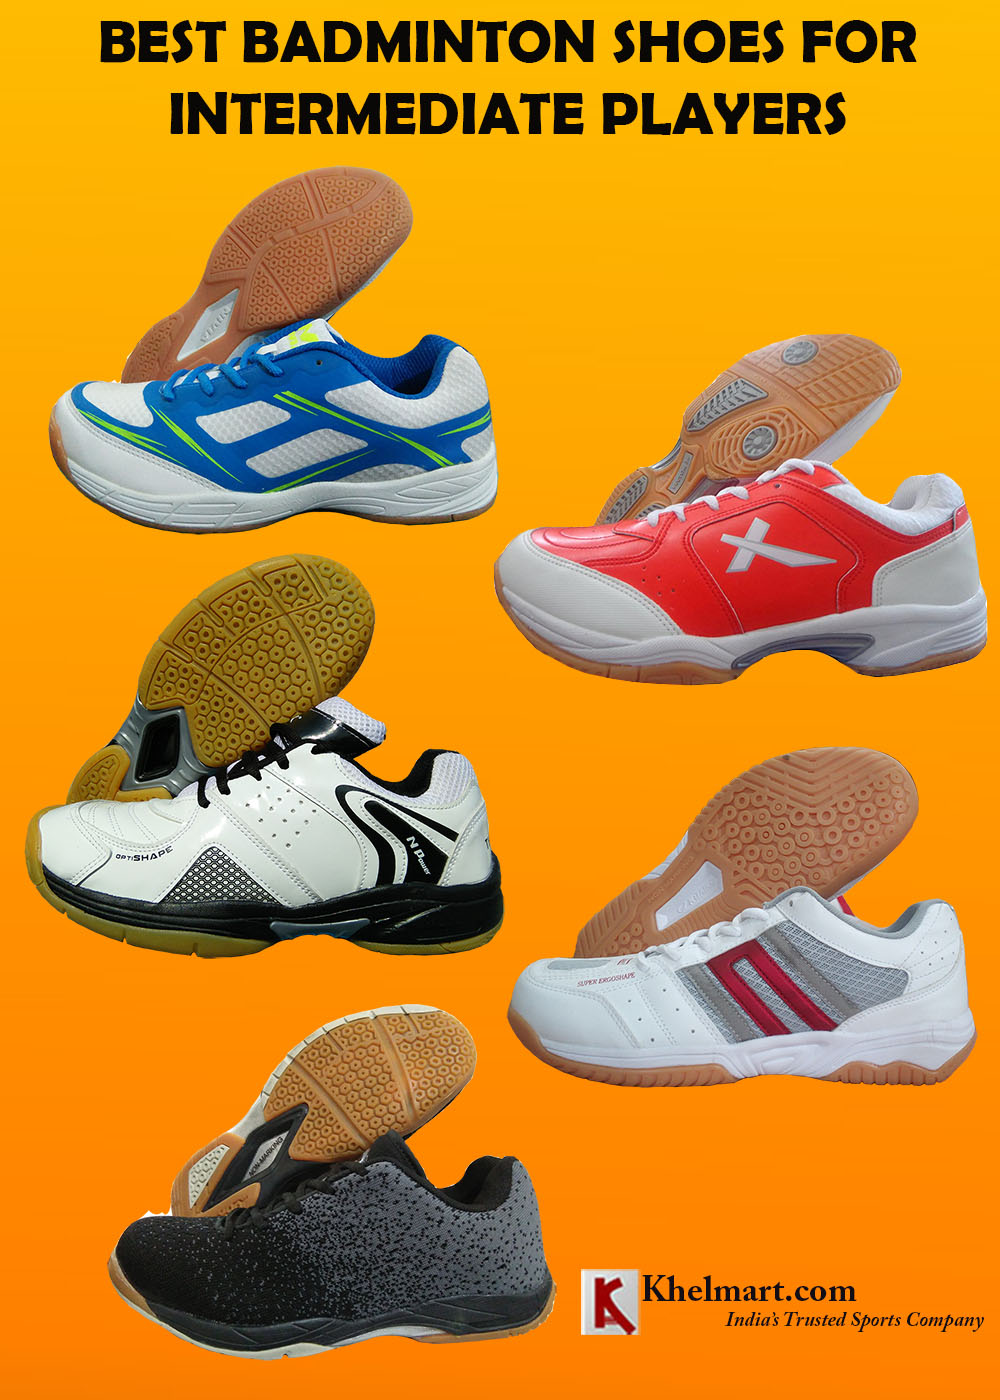 BEST BADMINTON SHOES FOR INTERMEDIATE PLAYERS